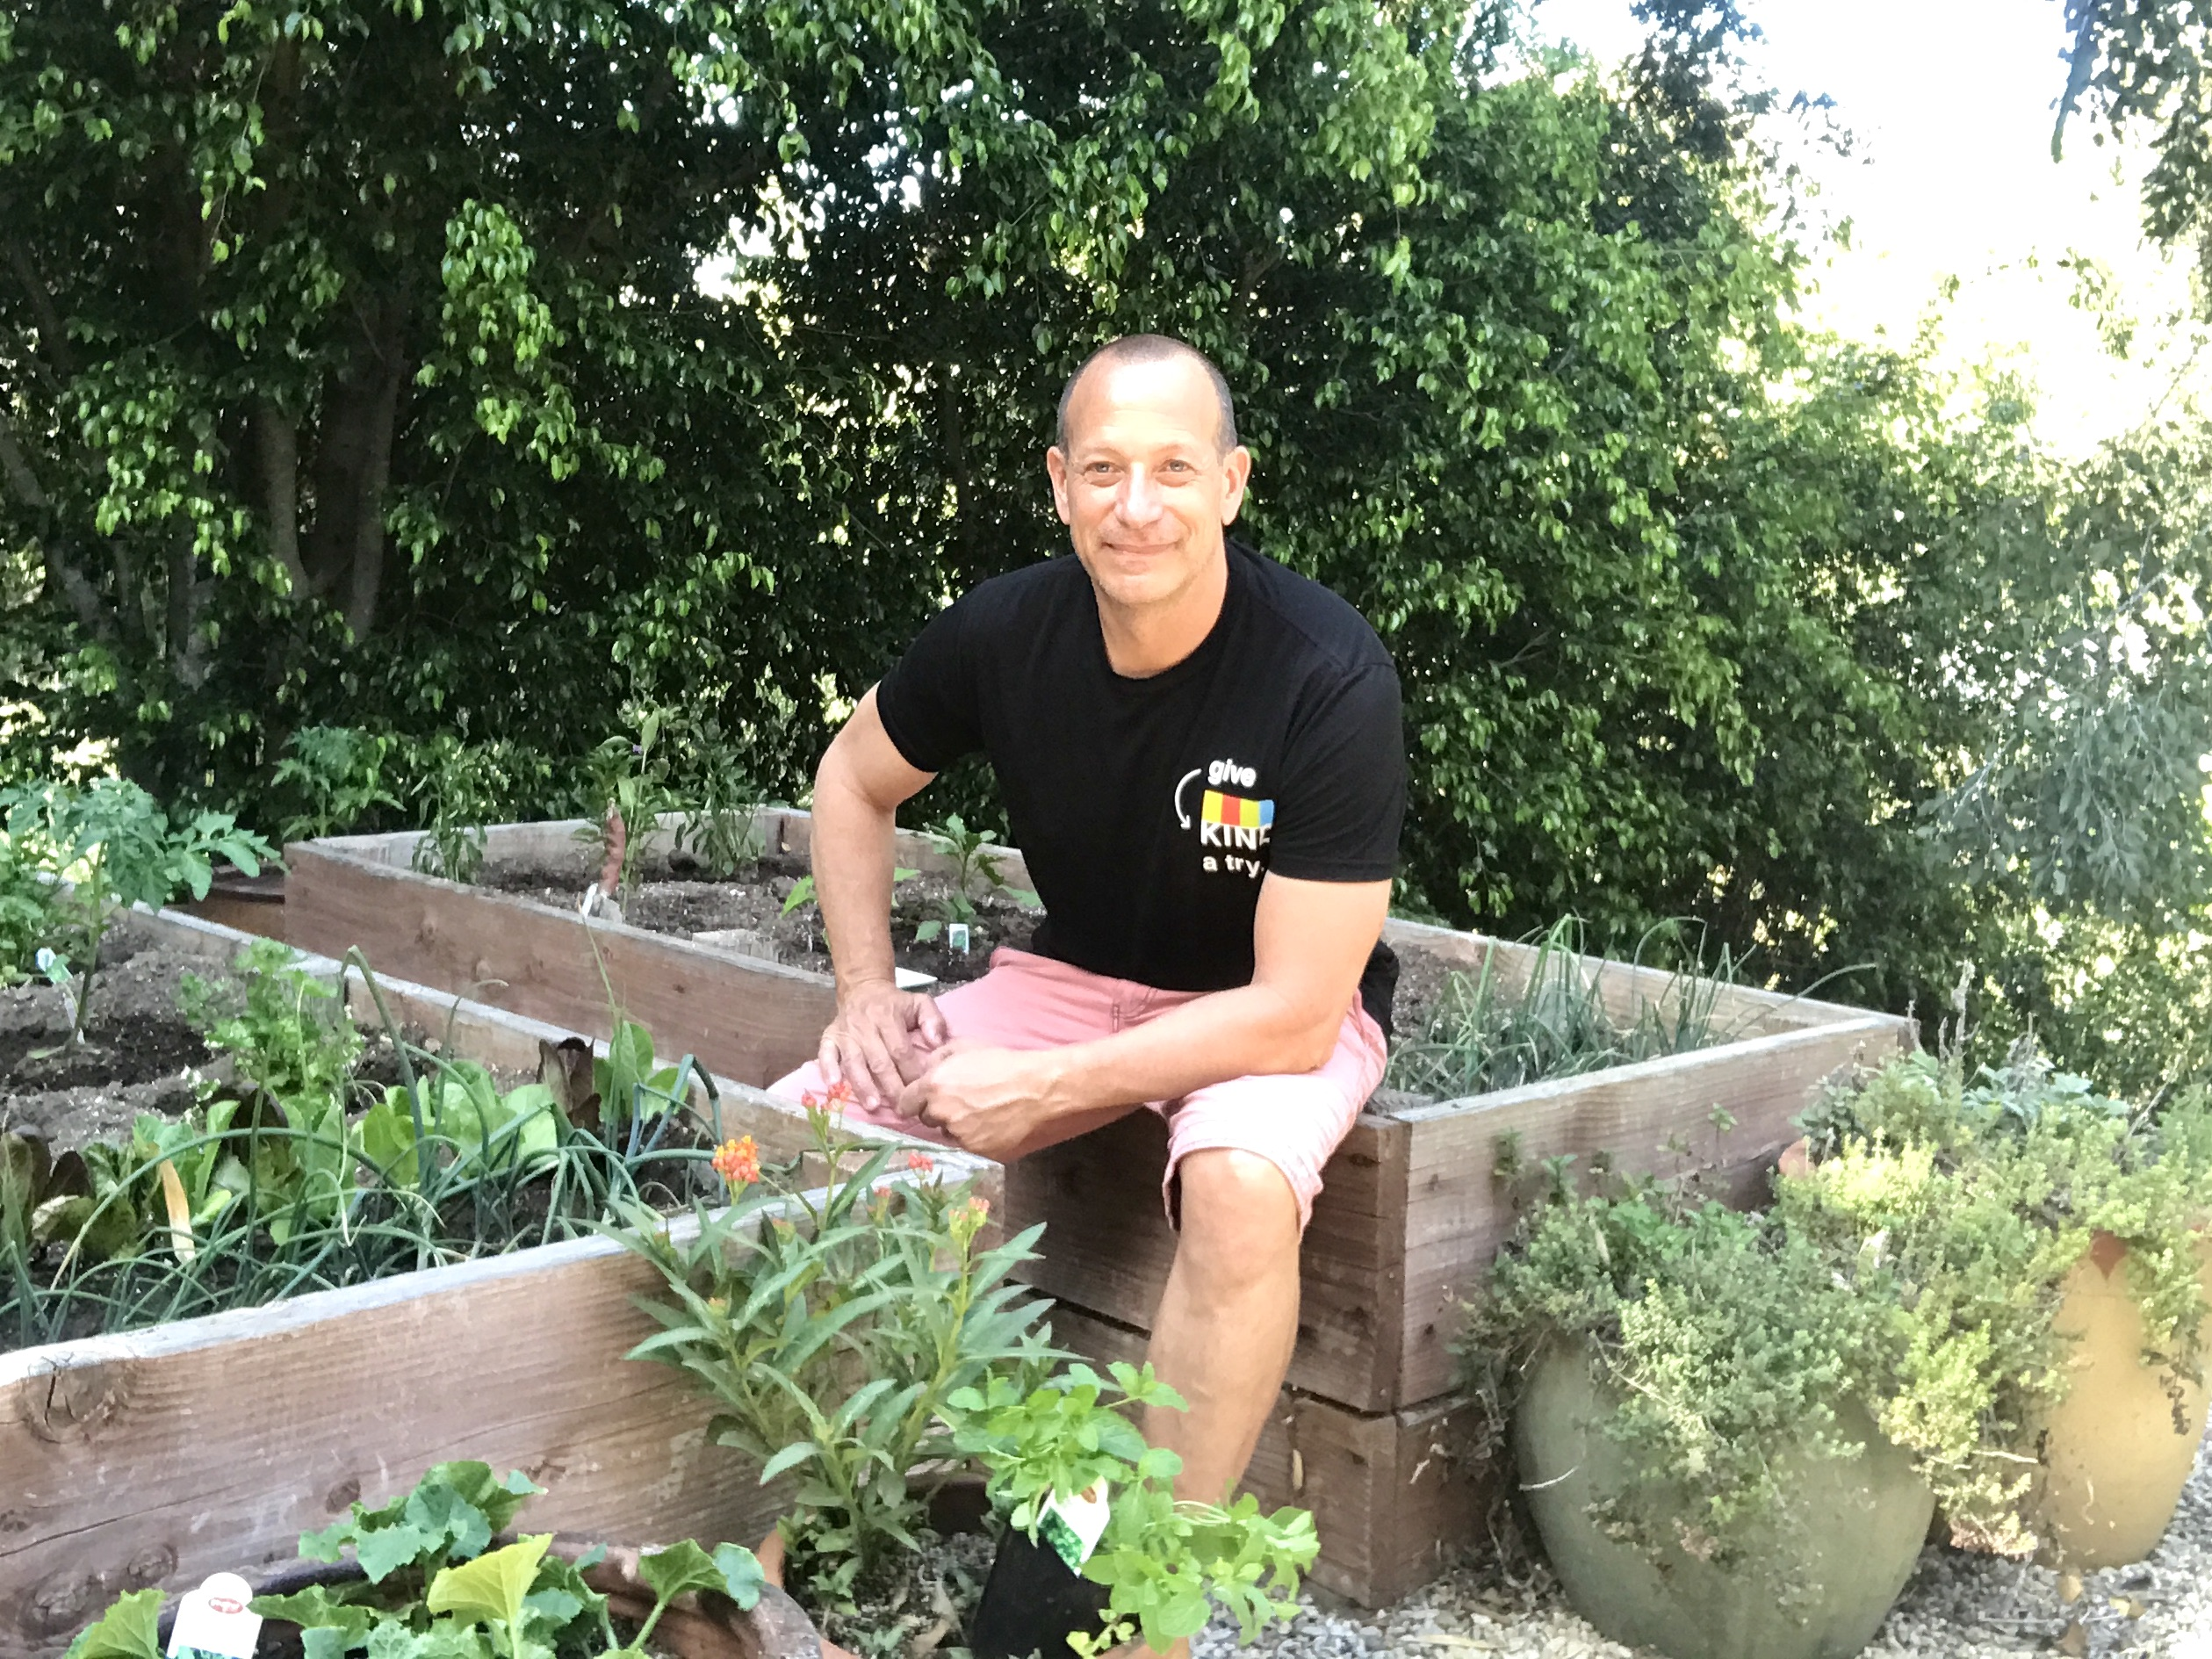 man sits in vegetable garden on raised beds